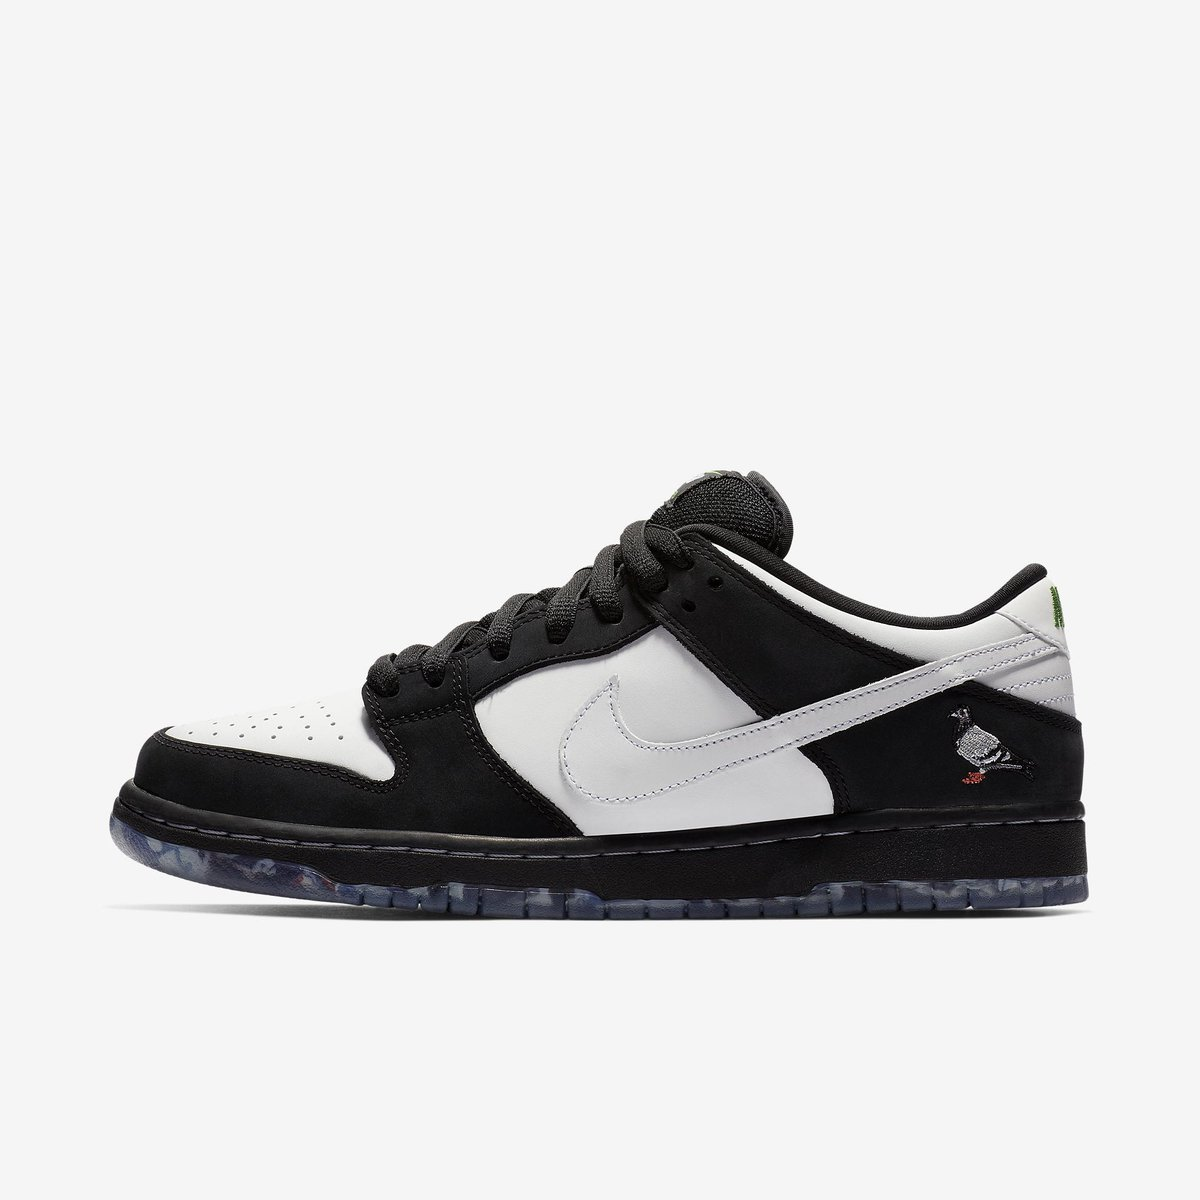 competitive price 041f5 0f36e 30 minutes via  Nike Draw.  staplepigeon x Nike SB Dunk Low. Nike Draw  opens at 10 00am ET. —  https   bit.ly 2HbEKpL pic.twitter.com zQxg1r62qg